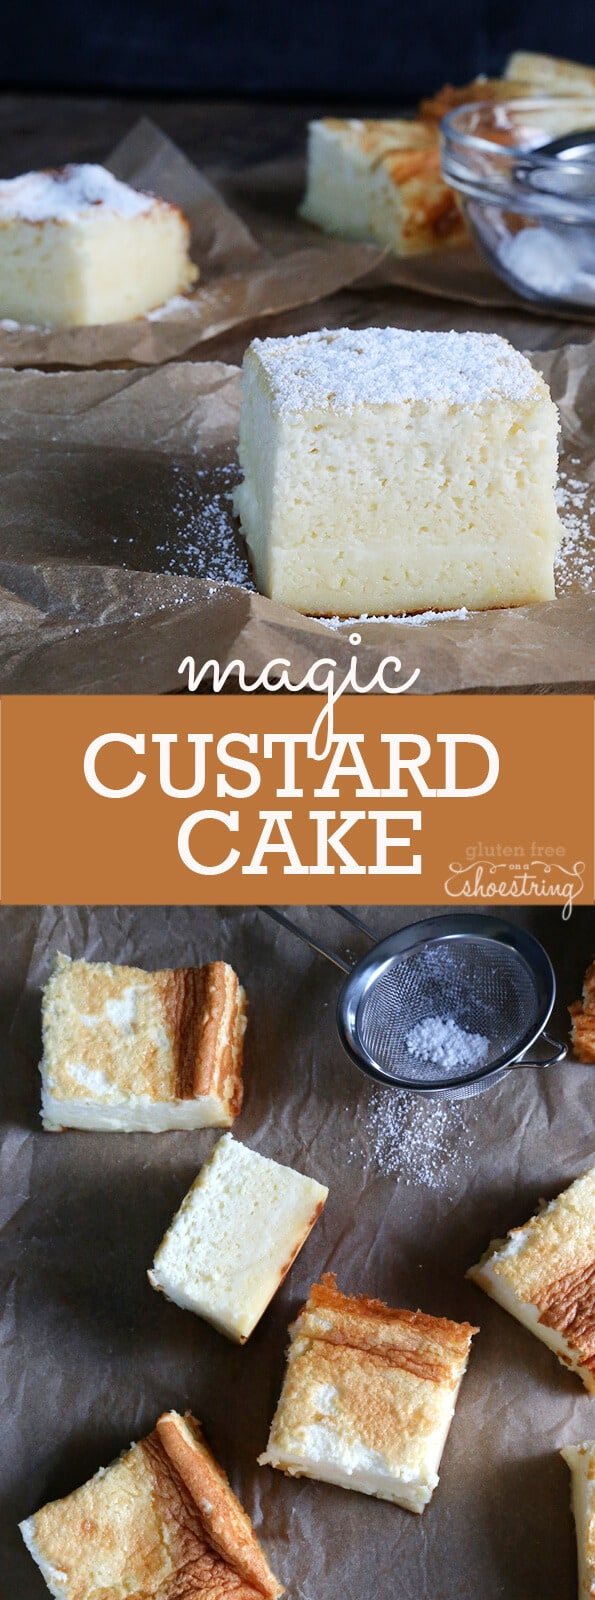 Close up and overhead view of custard cake